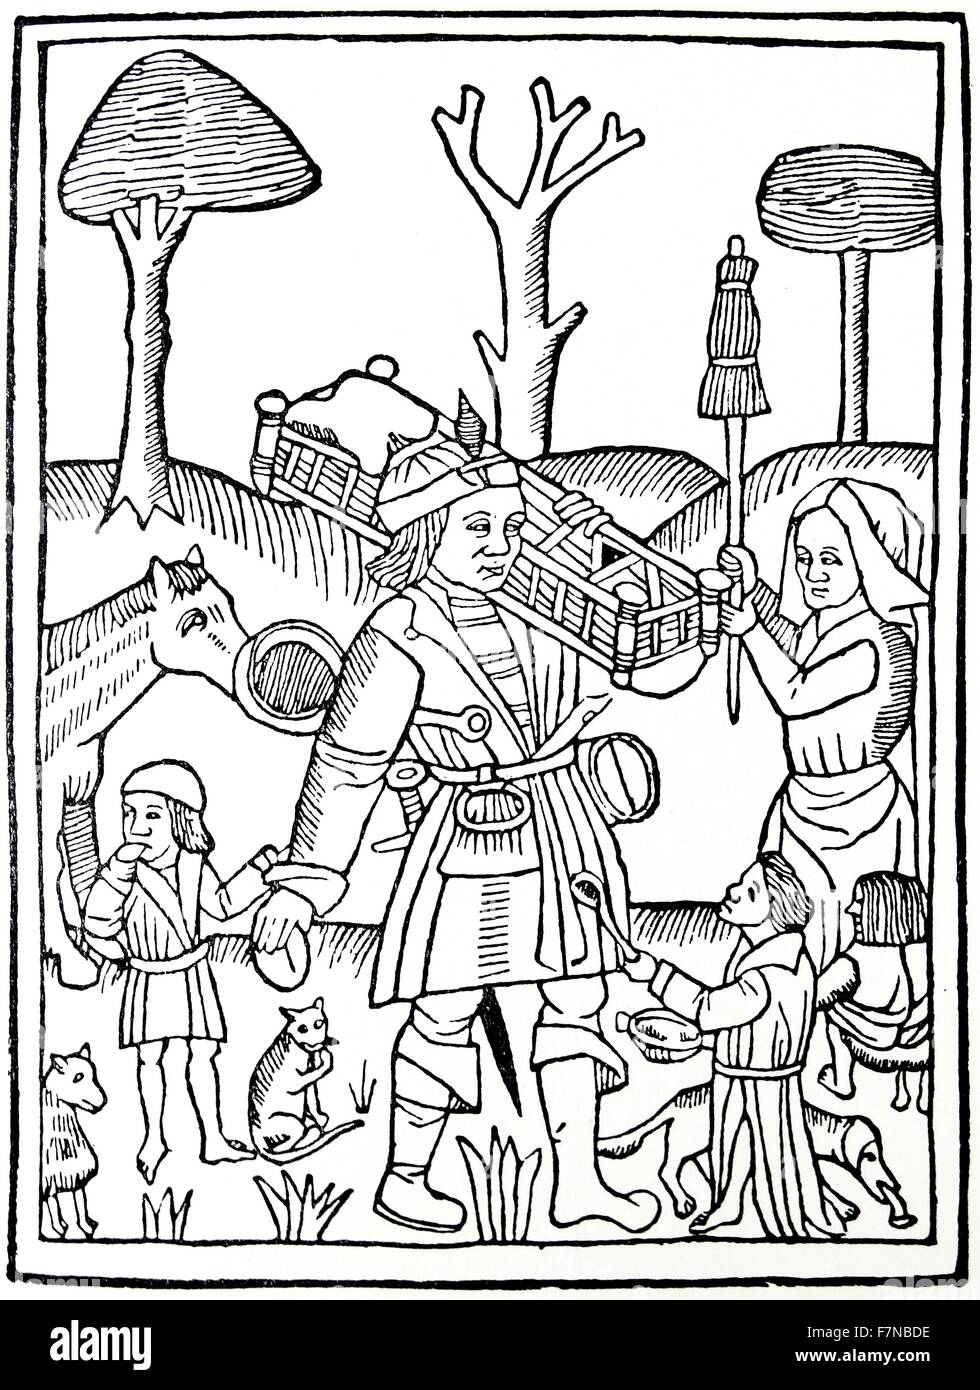 Les Quinze joies de mariage (The 15 Joys of Marriage) is an anonymous late 14th or early 15th century French satire - Stock Image